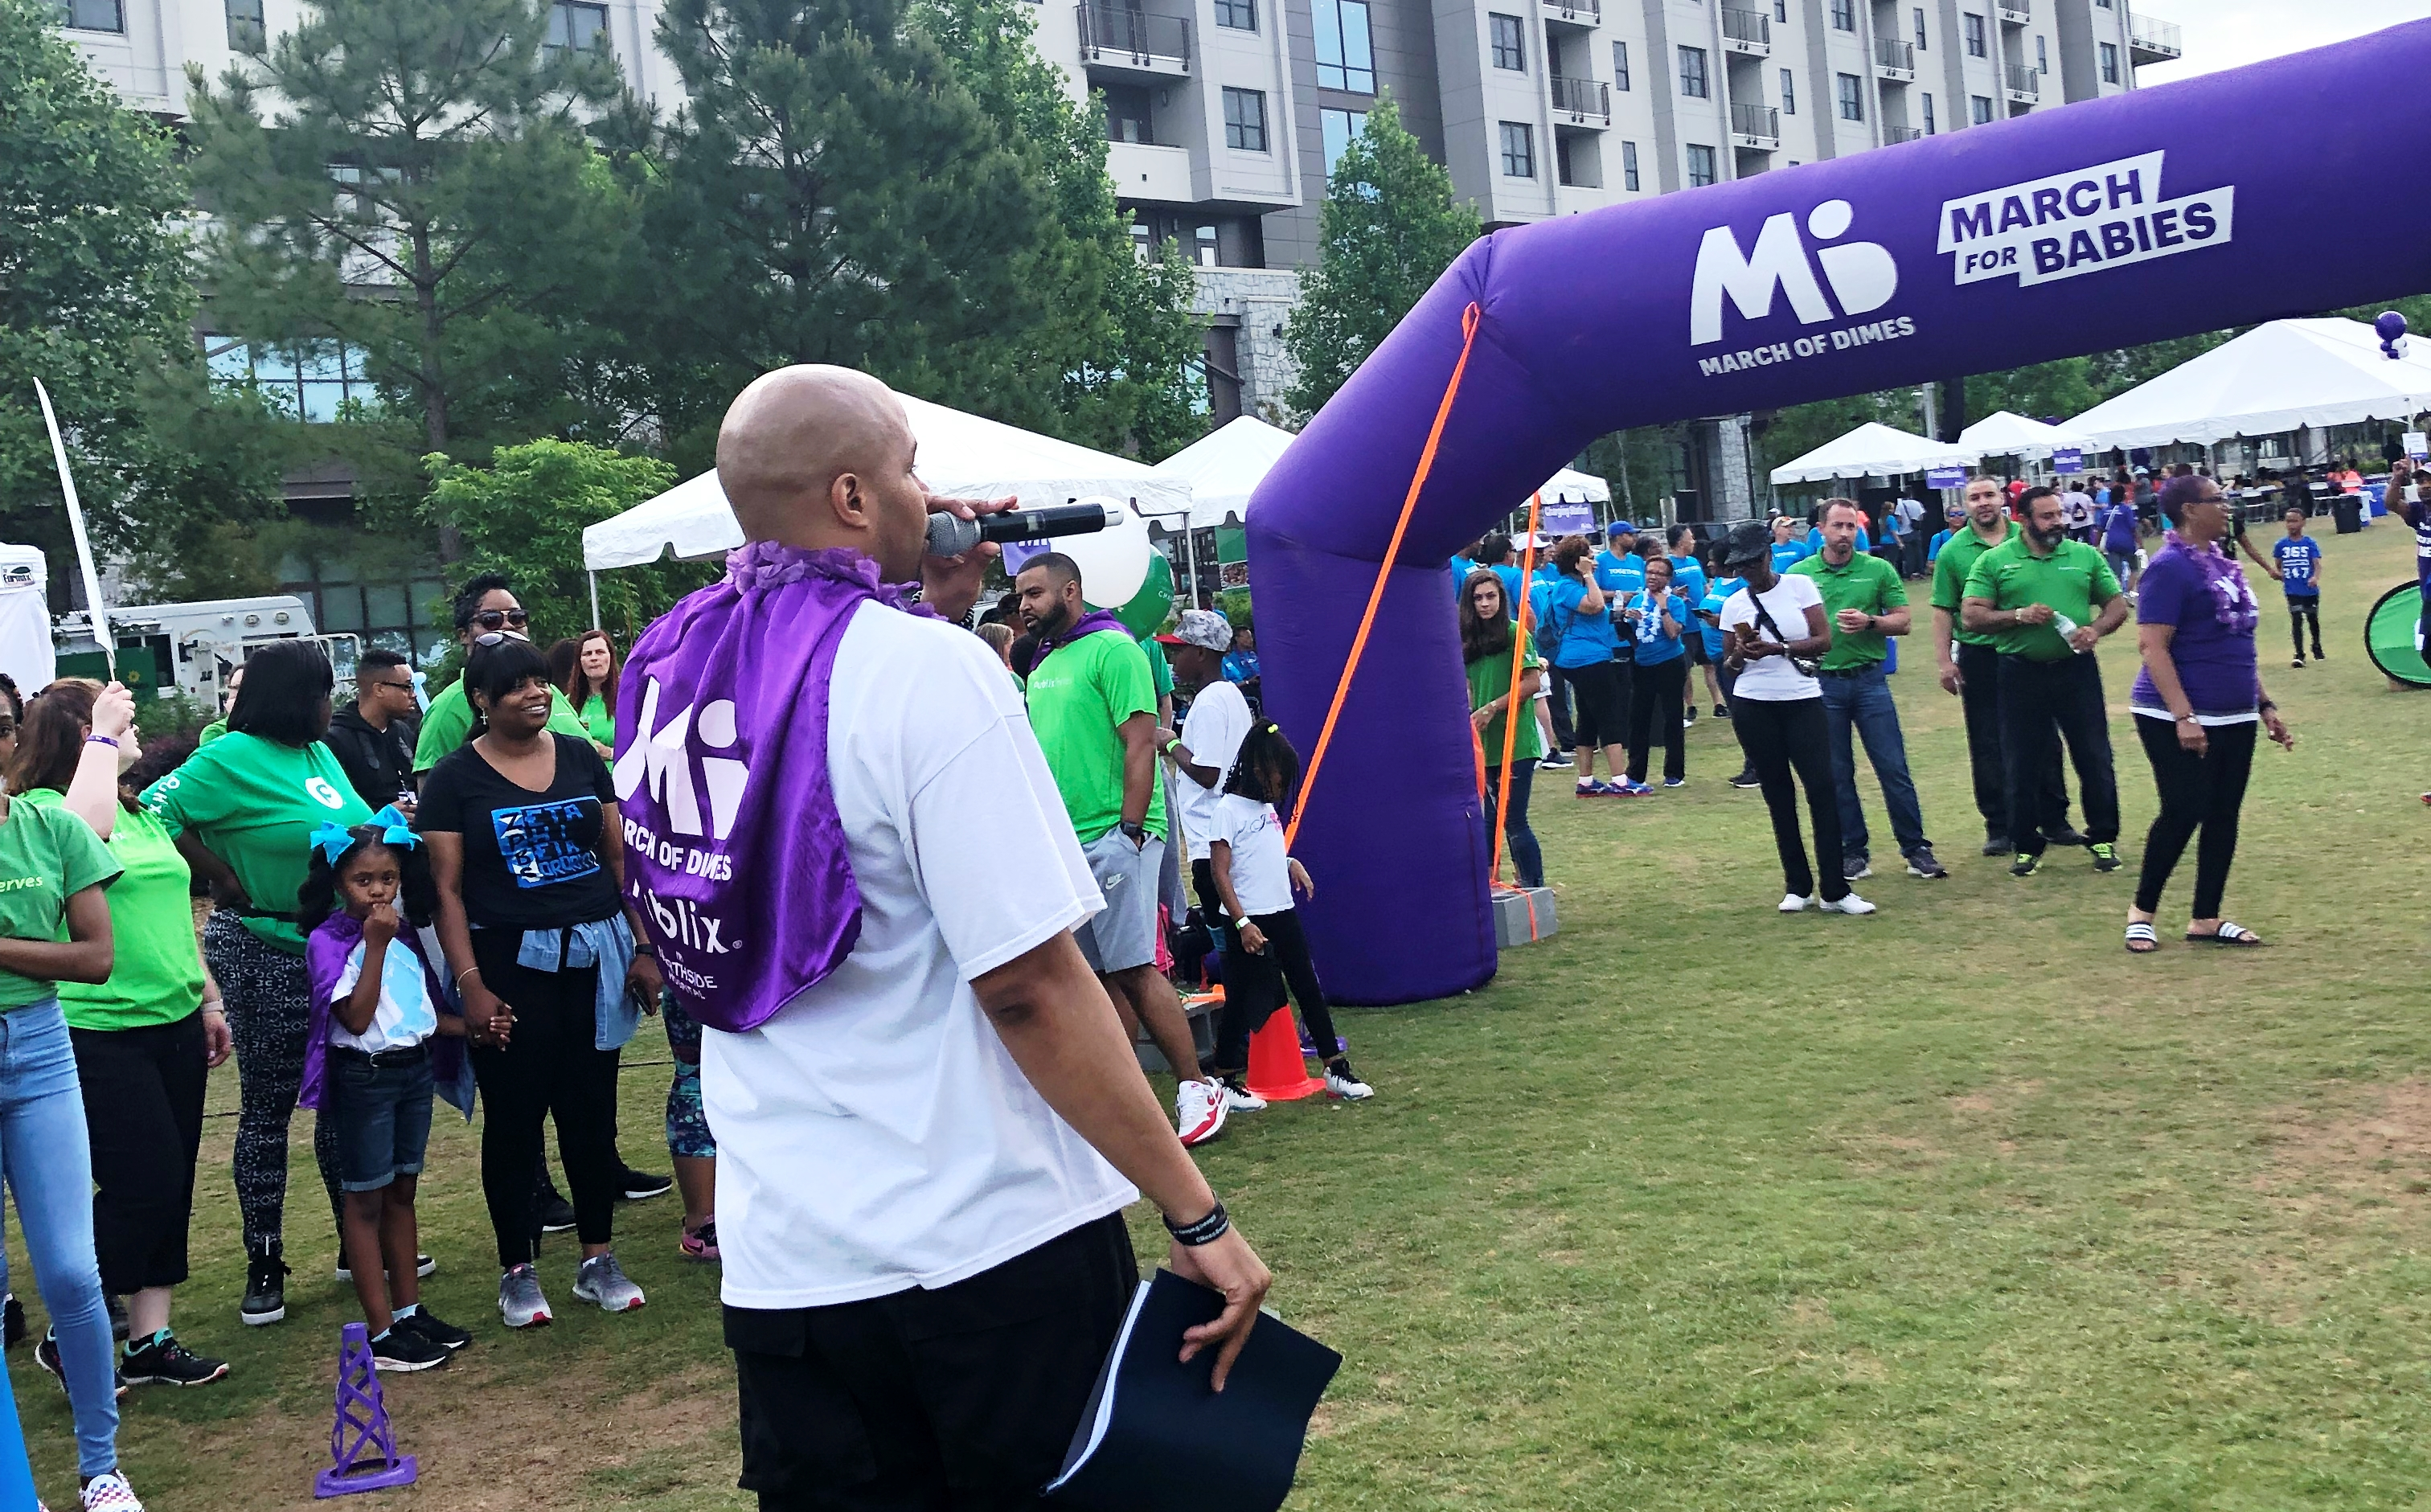 march for babies reec (4)